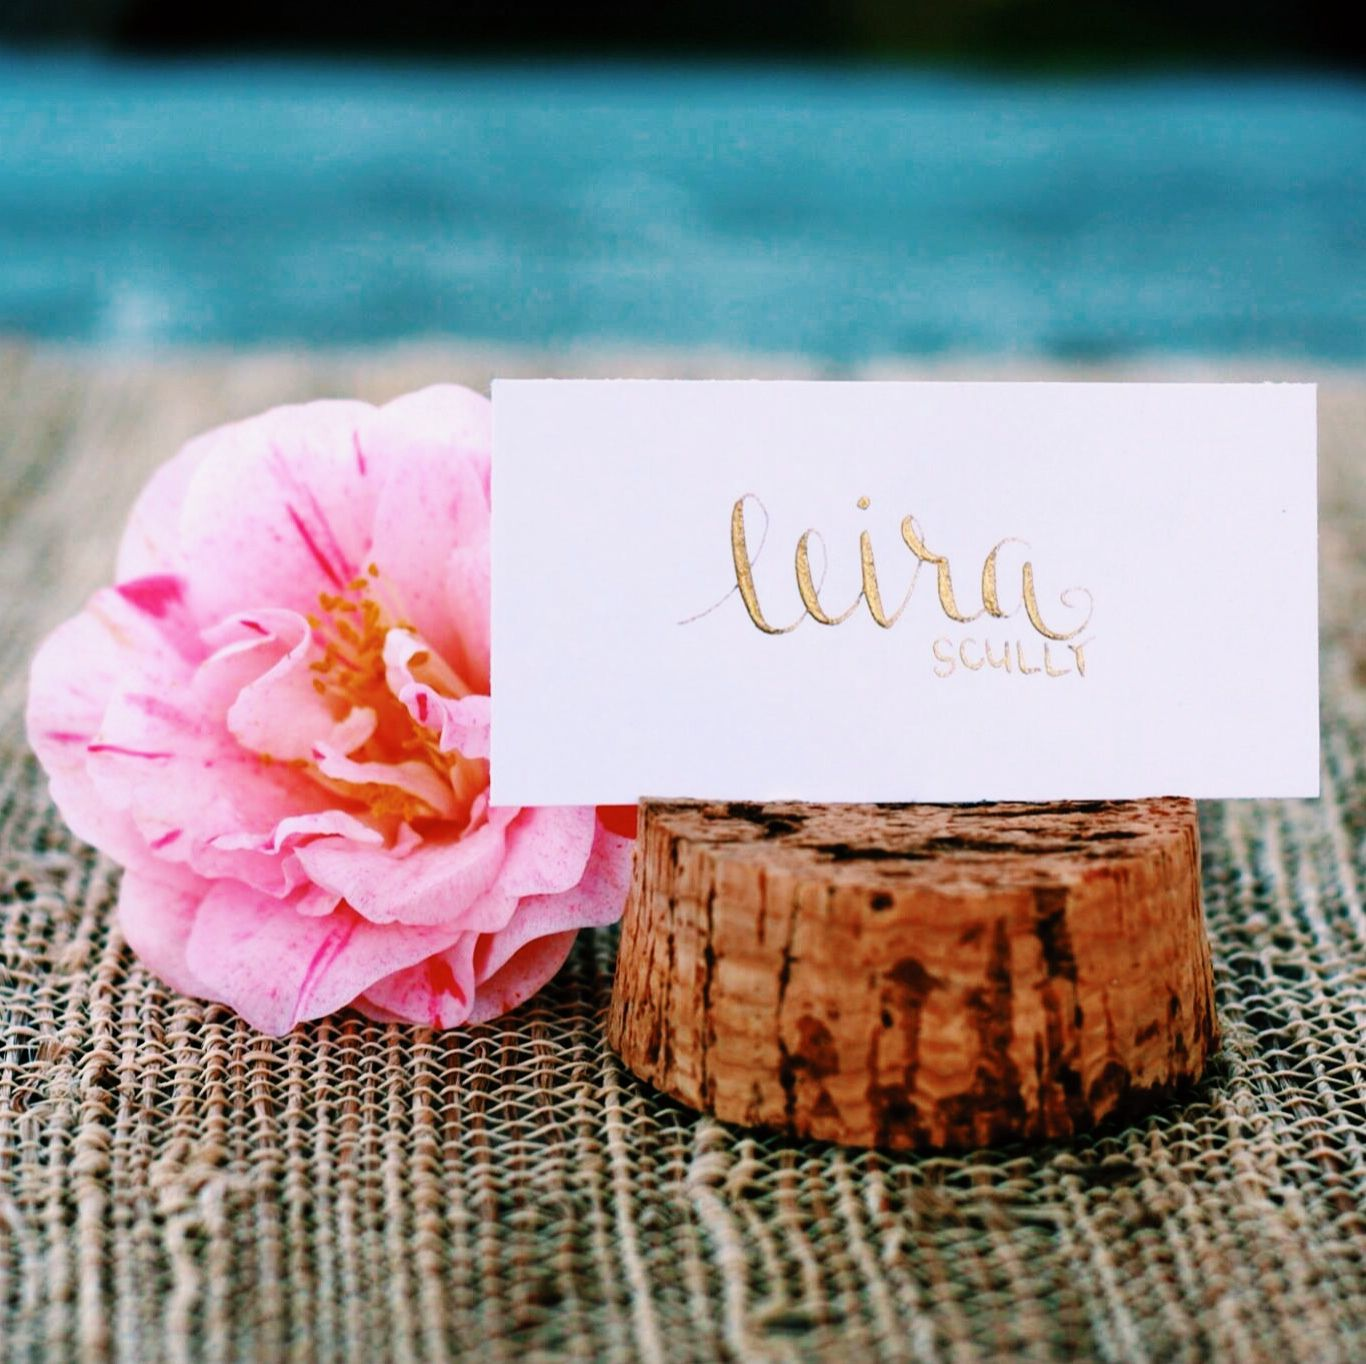 Beautiful Dinner Party Name Ideas Part - 10: Wedding Place Cards - Escort Card - Gold / Black Calligraphy - Dinner Party  - Name